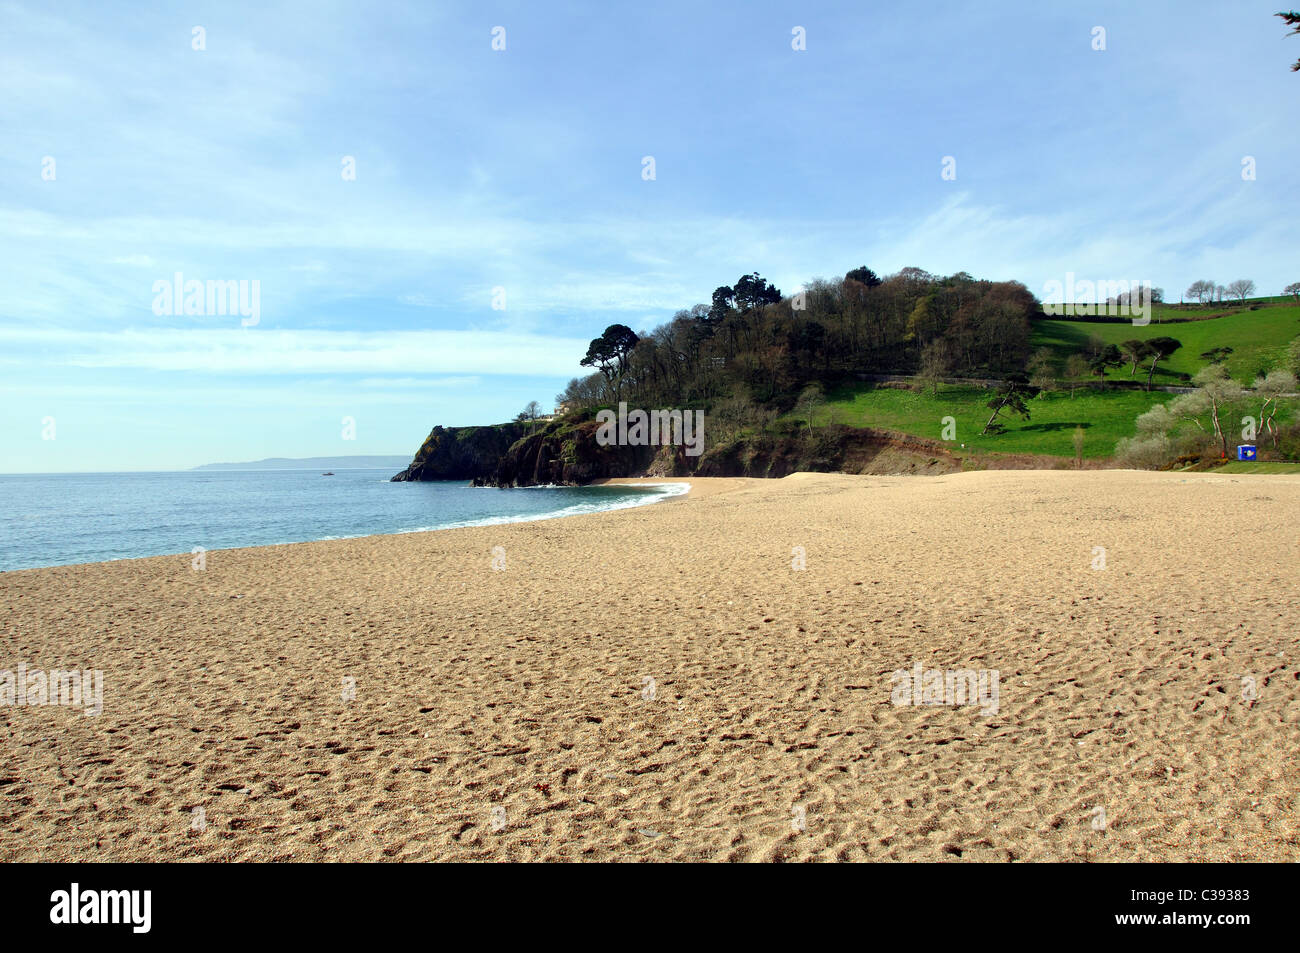 Blackpool Sands Beach, South Devon, U.K. - Stock Image